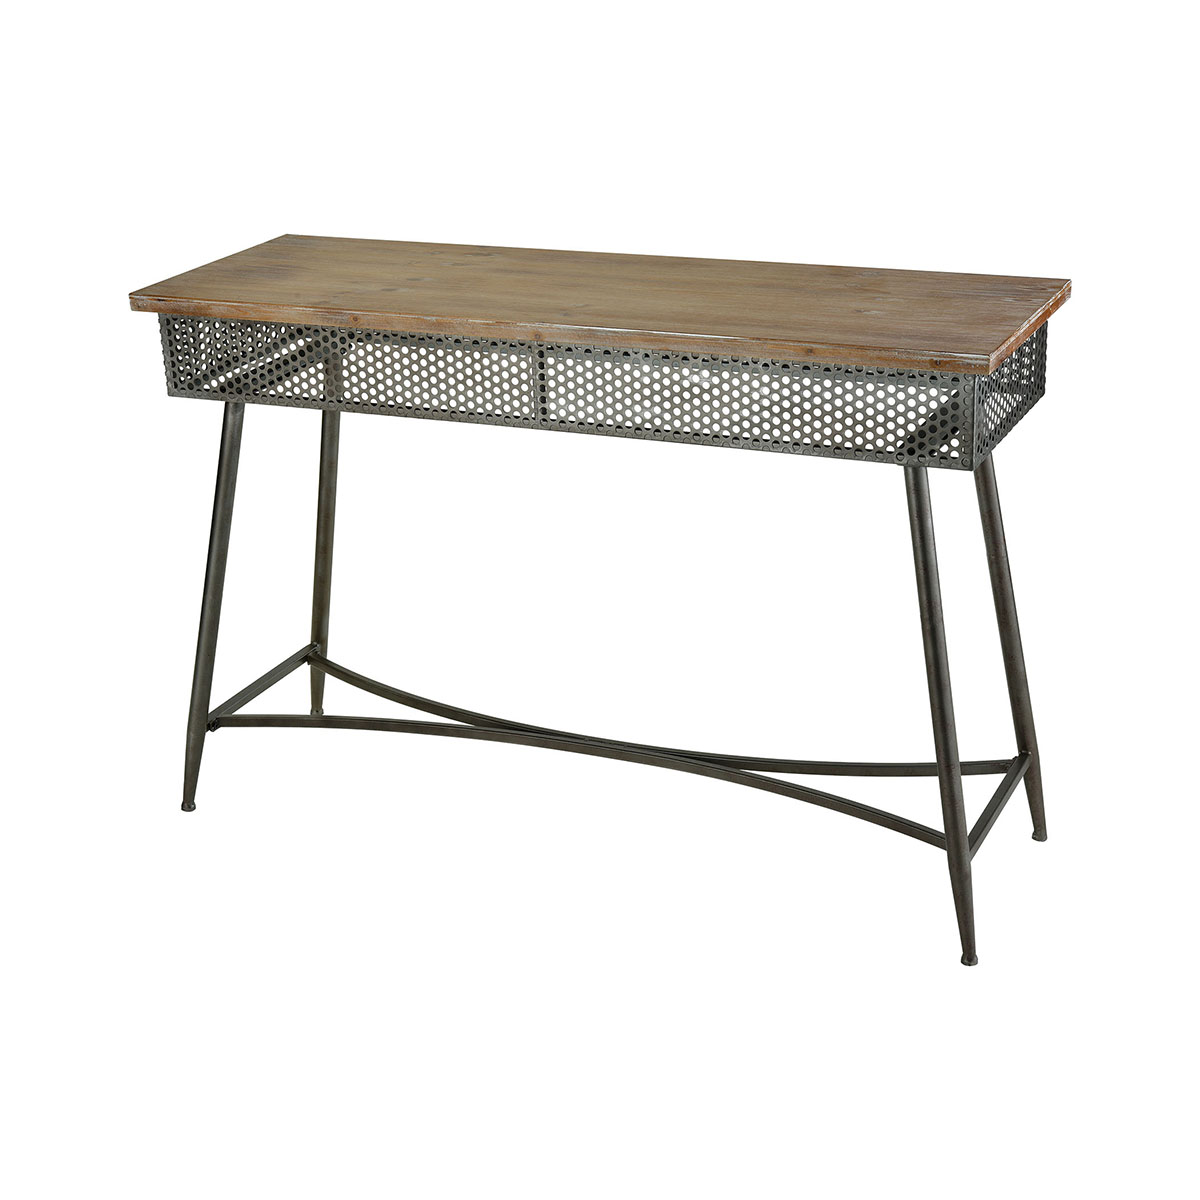 Perf Console 3138-418 | ELK Home